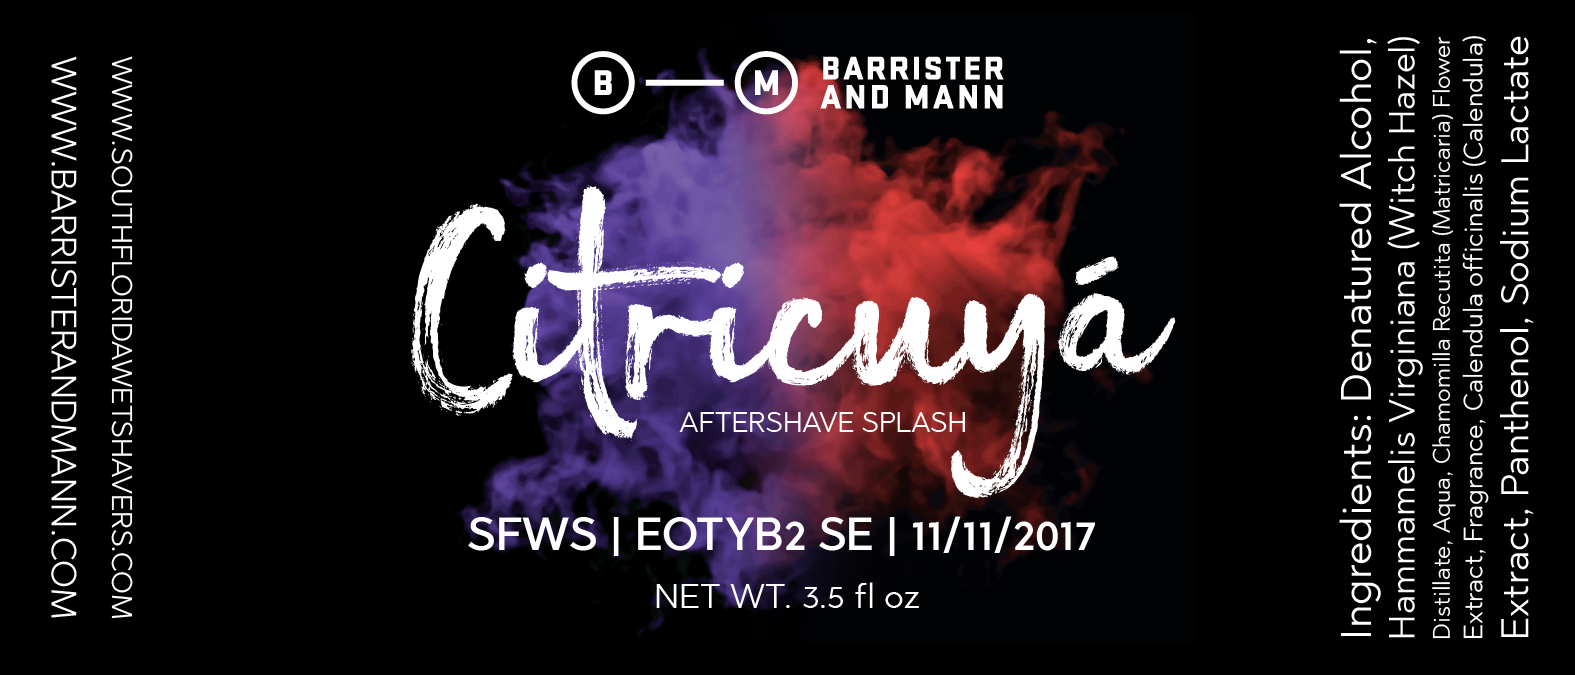 Barrister and Mann - Citricuyá - Aftershave image